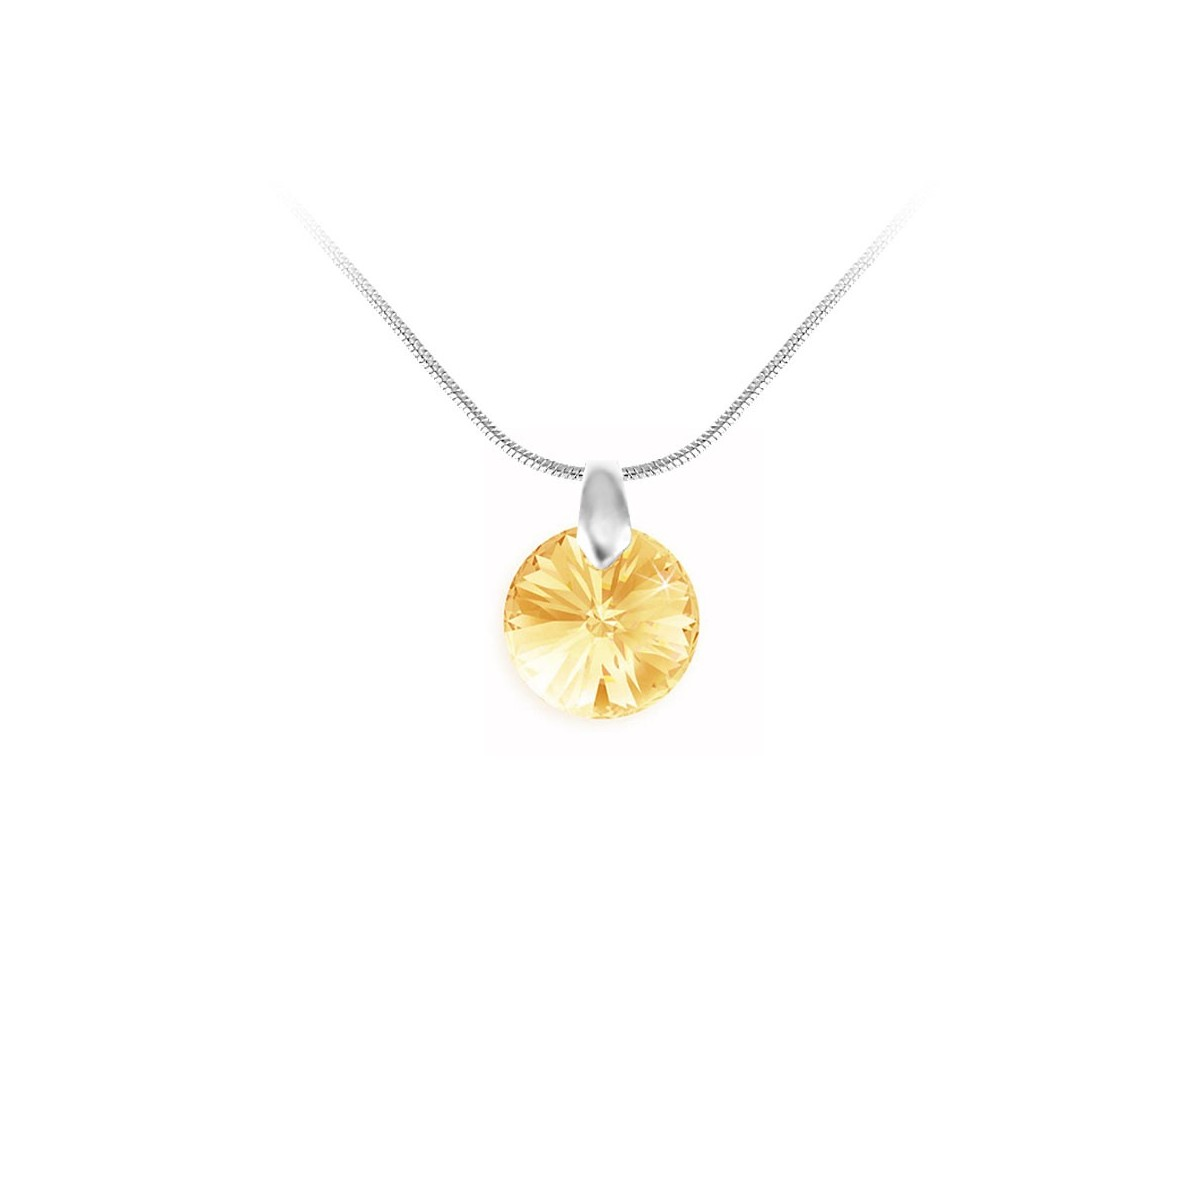 Collier argenté So Charm made with Crystal from Swarovski jaune